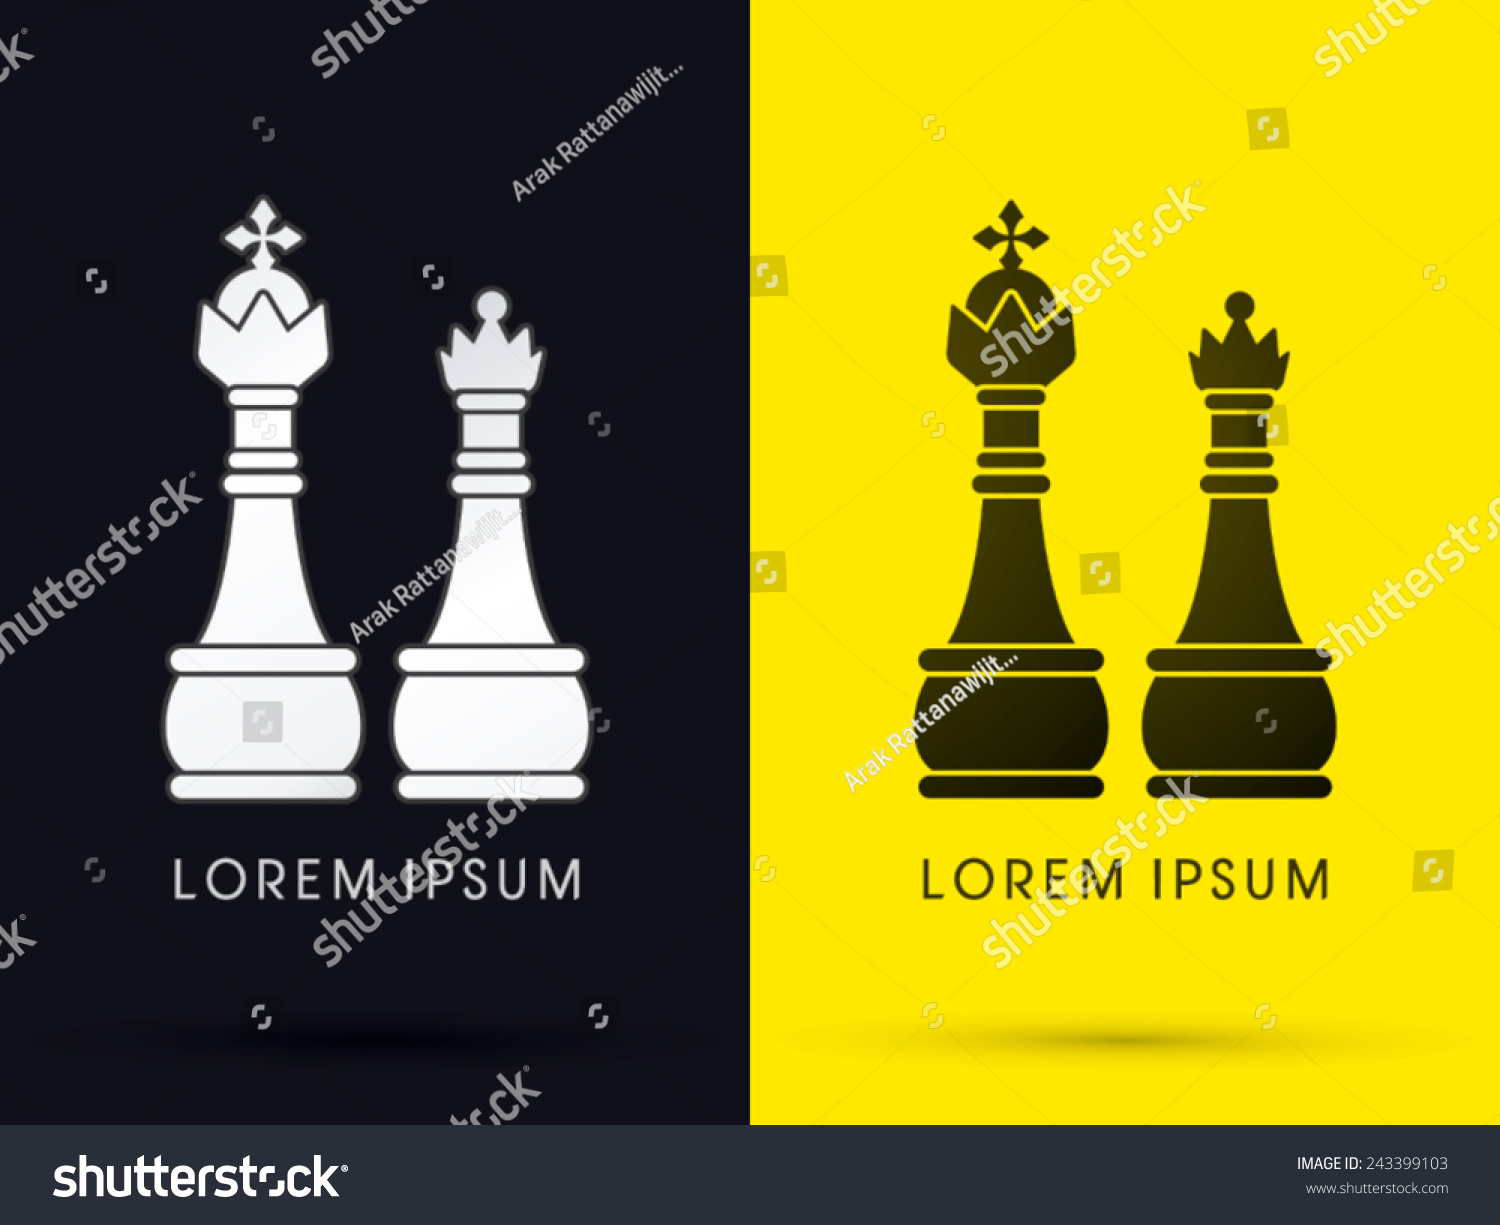 King queen chess logo symbol icon stock vector 243399103 king and queen chess logo symbol icon graphic vector biocorpaavc Gallery